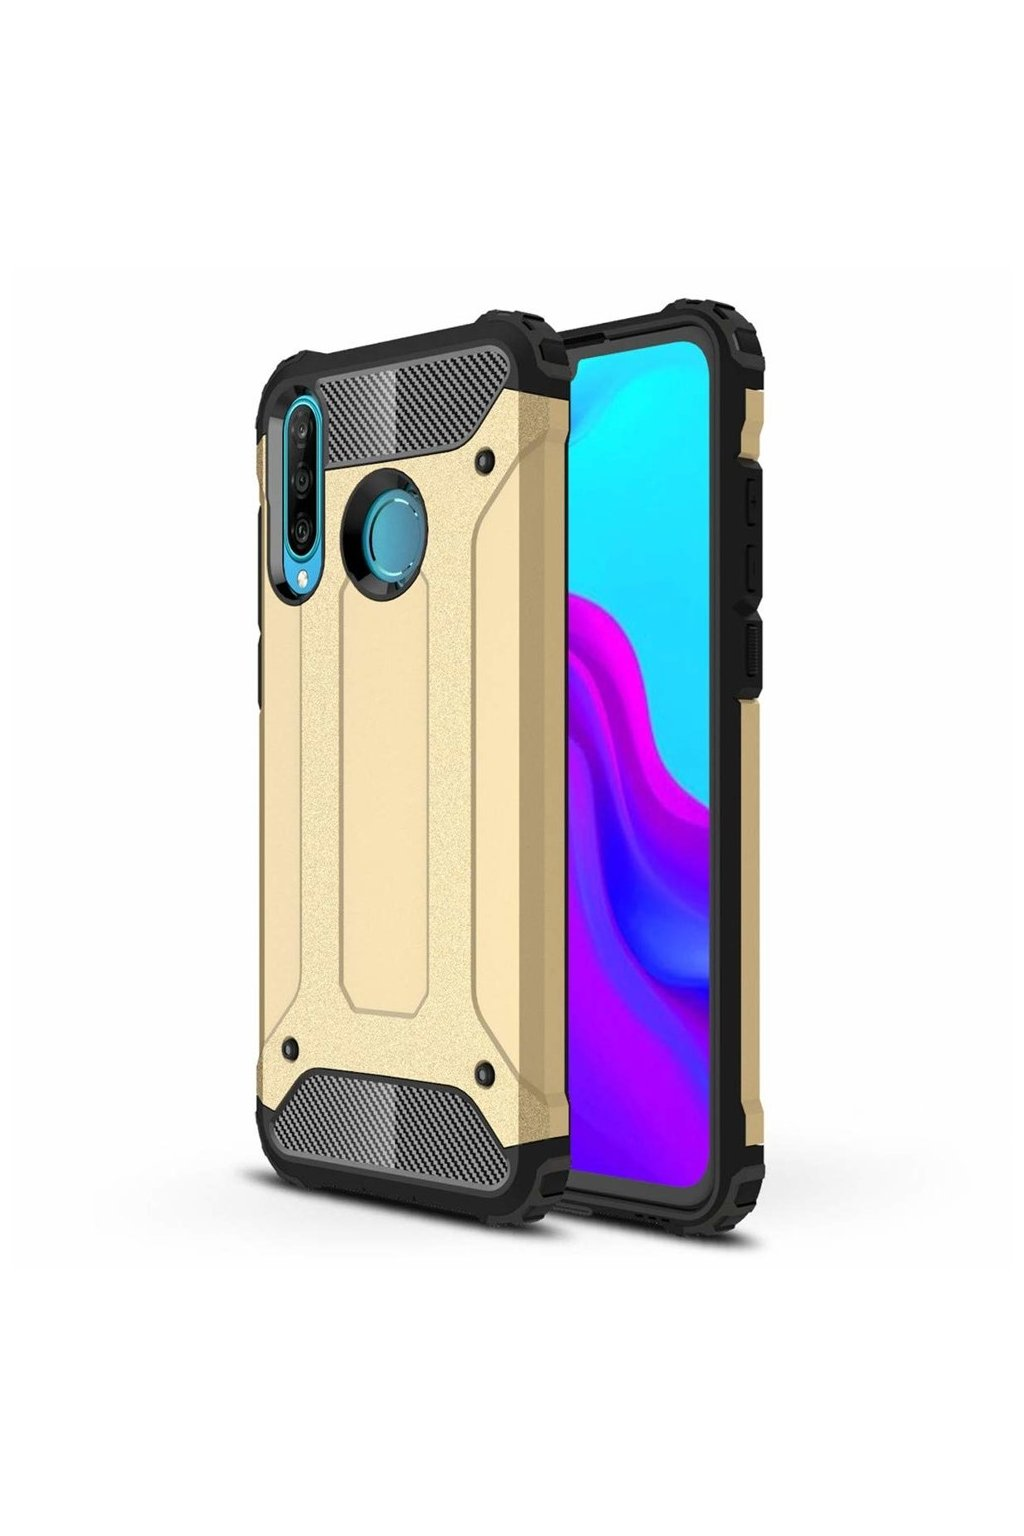 eng pl Hybrid Armor Case Tough Rugged Cover for Huawei P30 Lite golden 49271 1